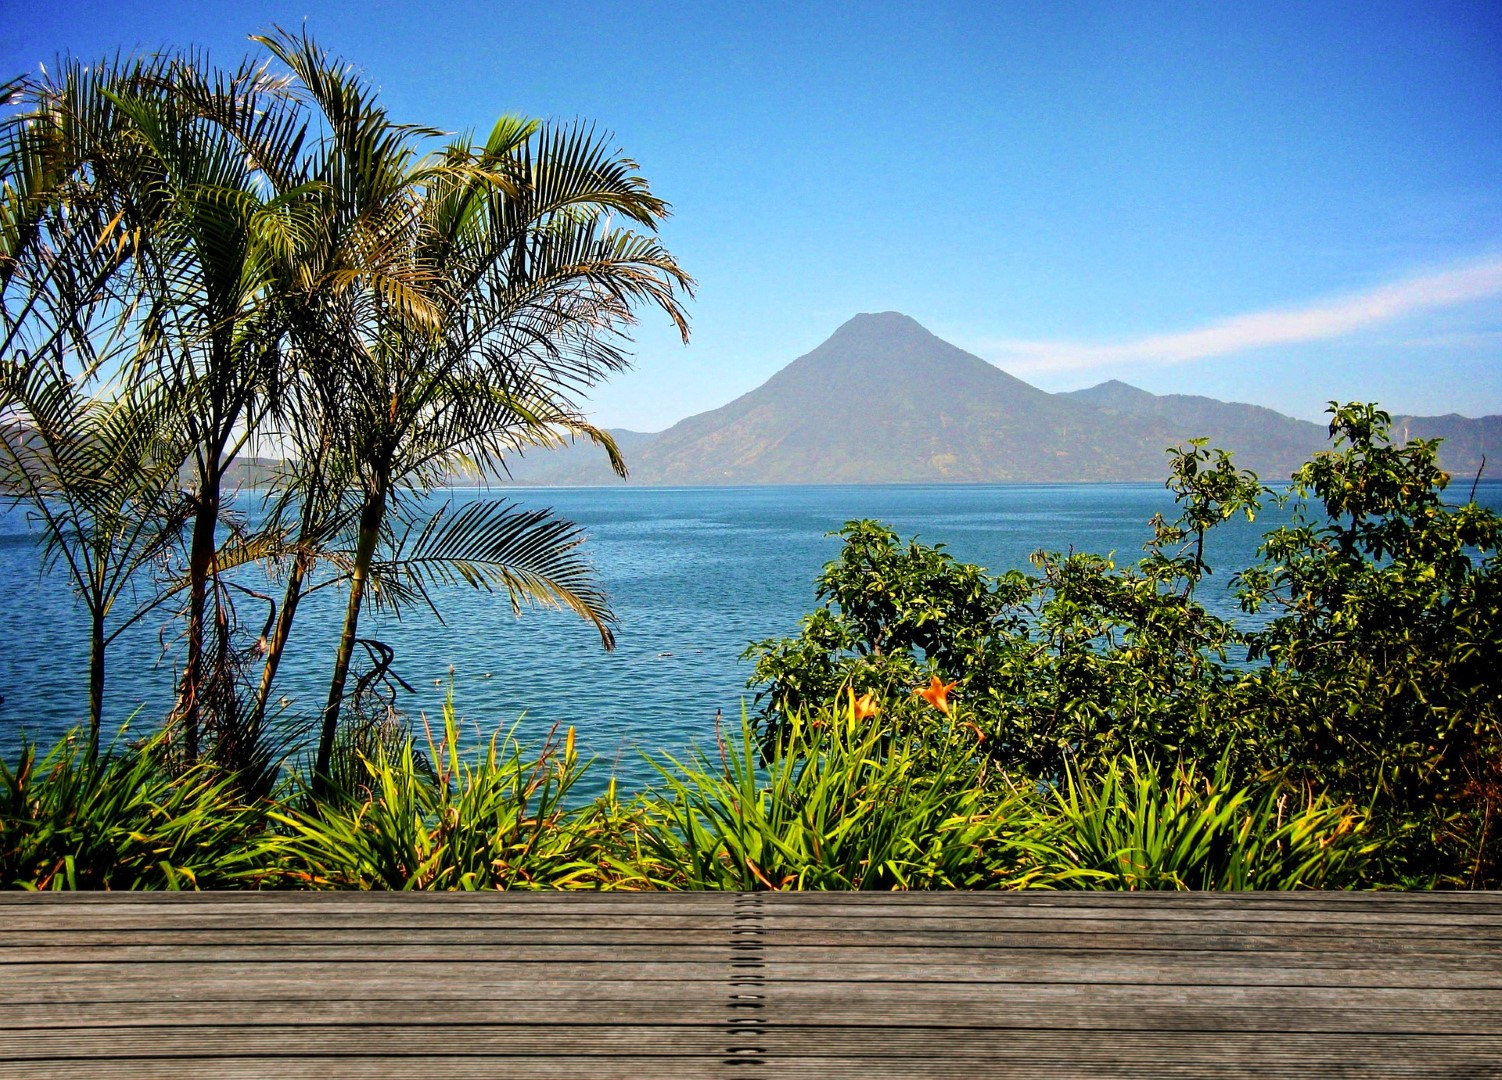 View of Lake Atitlan, Guatemala from decking